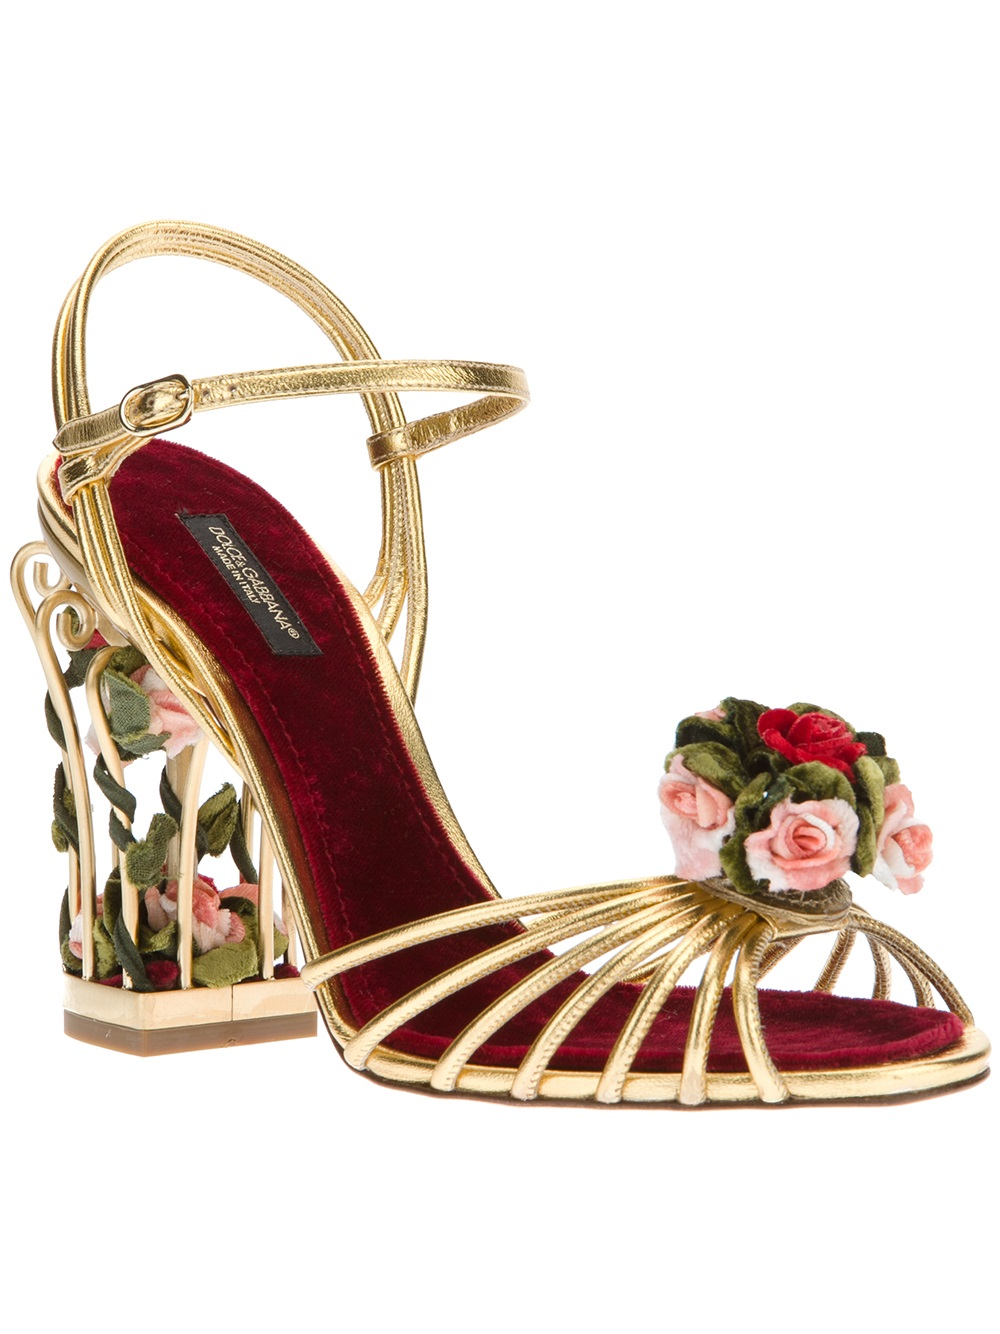 Dolce & Gabbana Floral Slingback Sandals sale low cost aXmmGAaVj